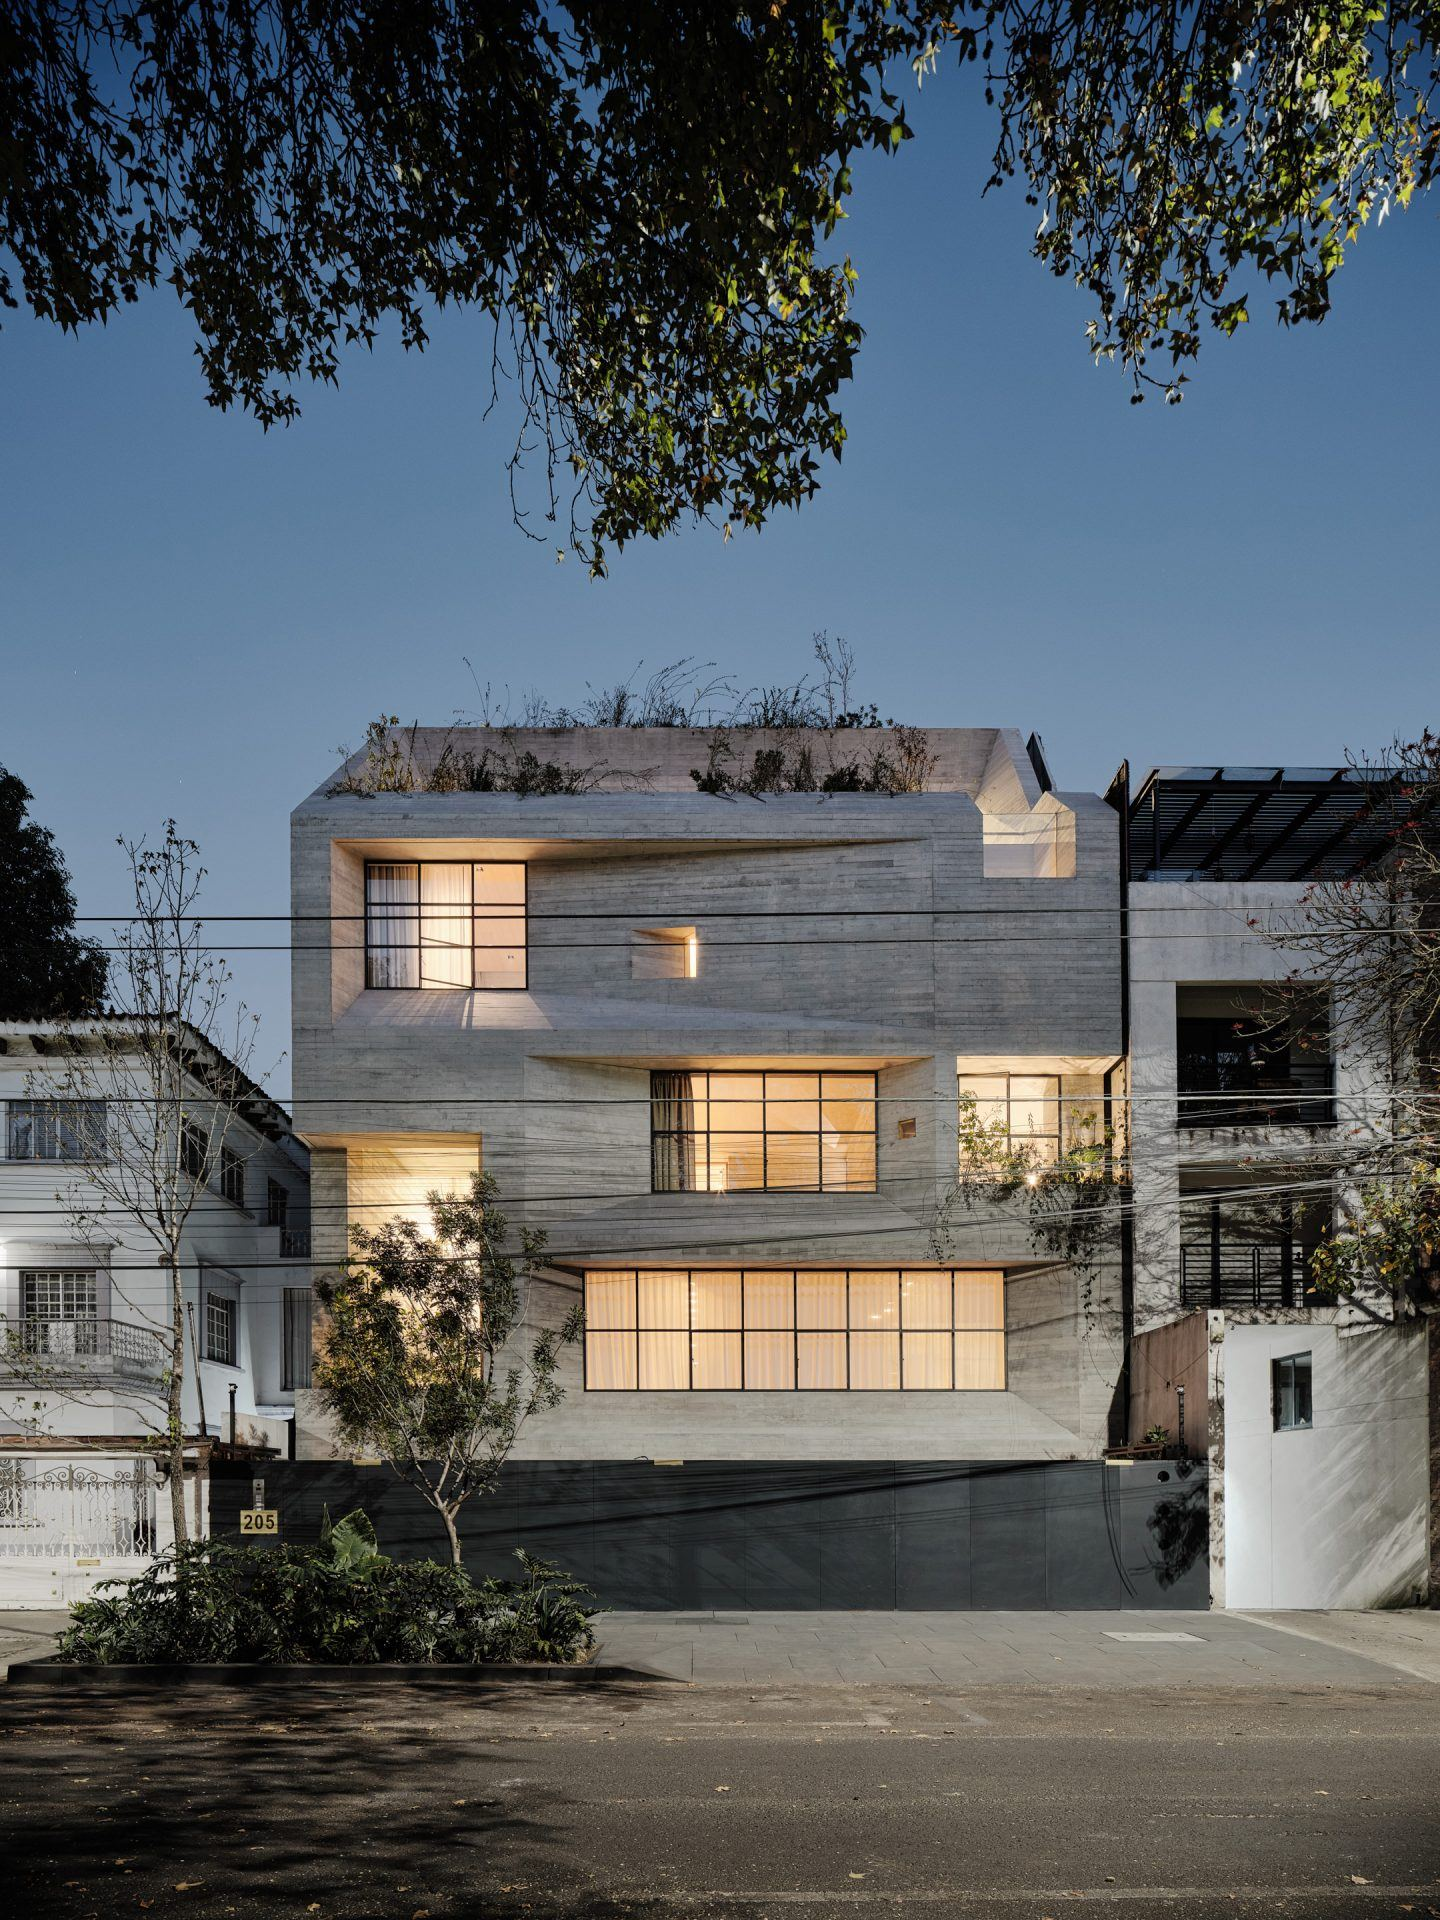 IGNANT-Architecture-StudioRickJoy-Polanco-1